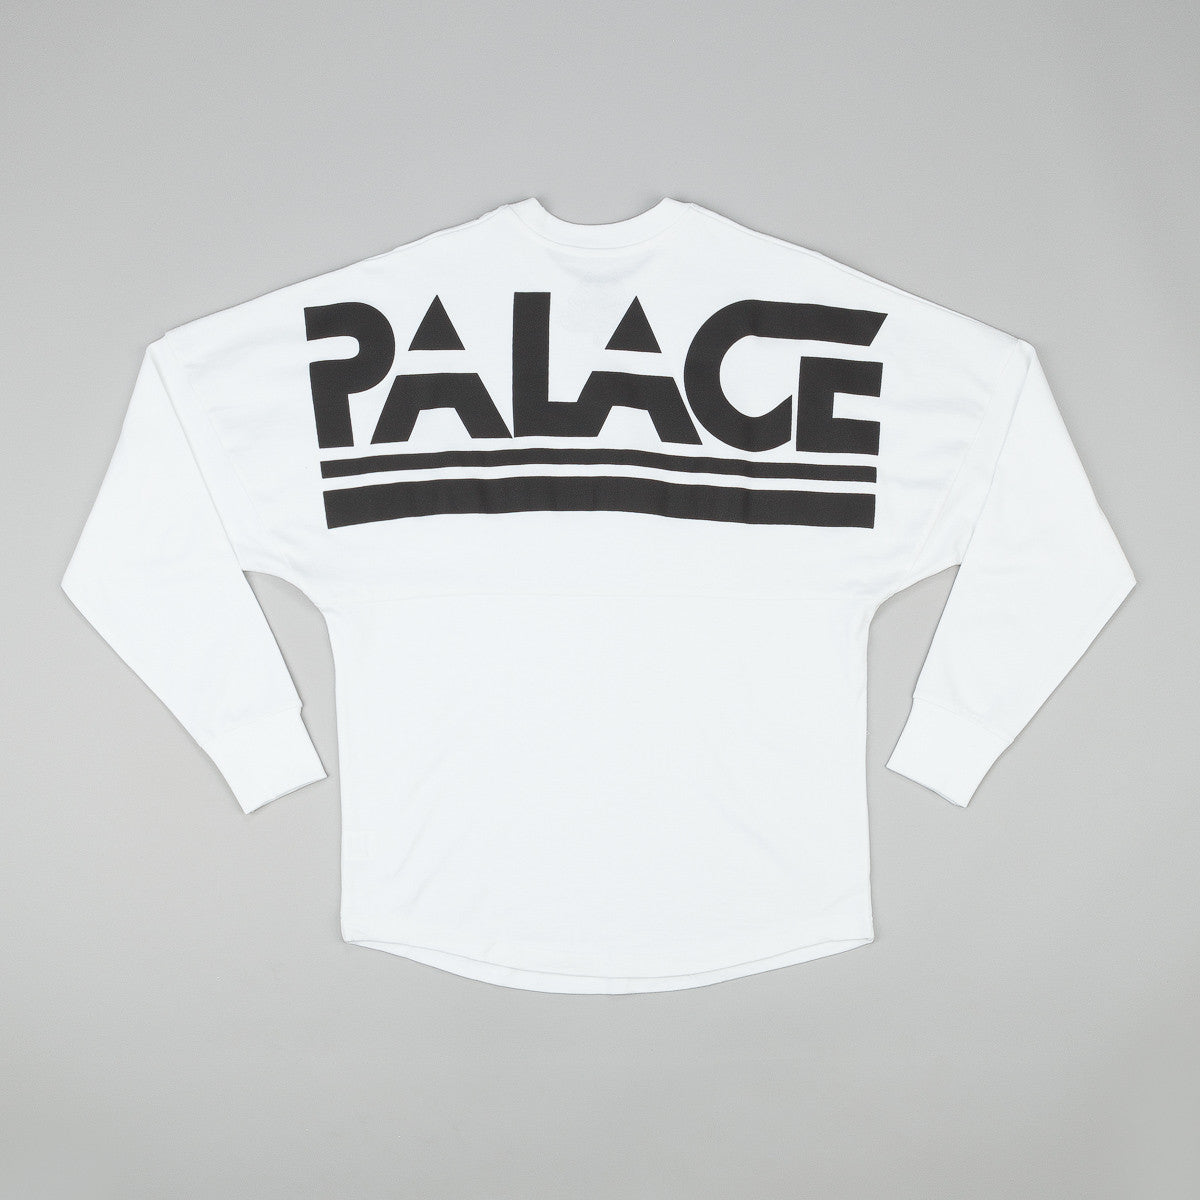 Palace Lightweight Crew Neck Sweatshirt - White